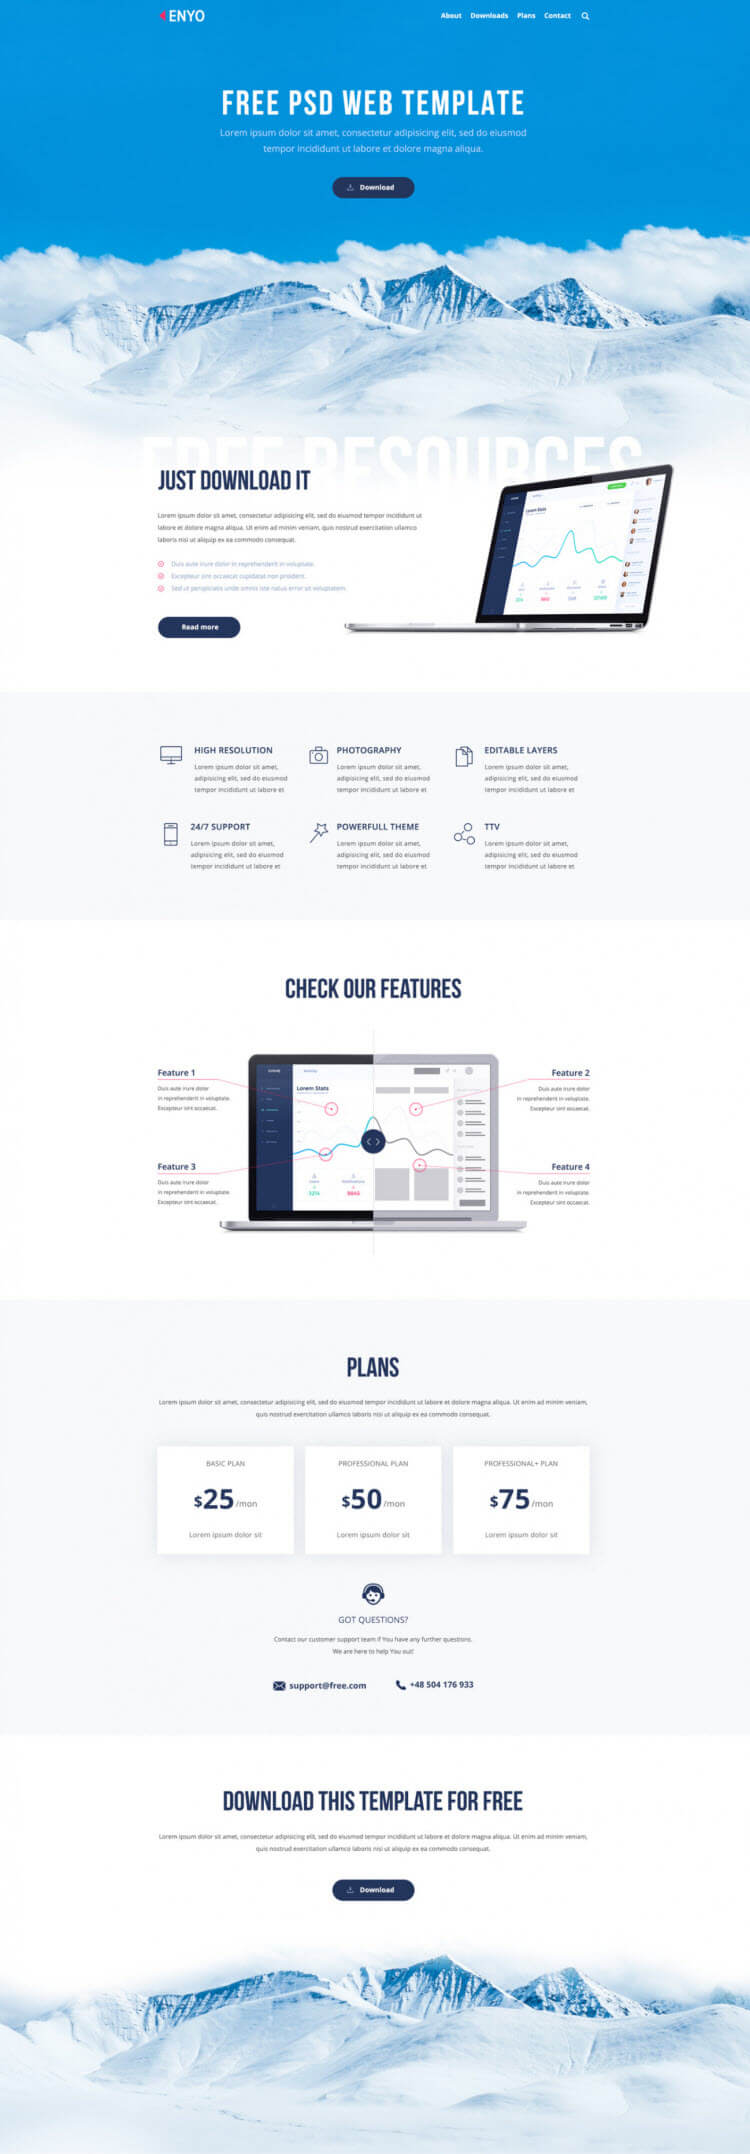 Enyo - Free PSD Website Template